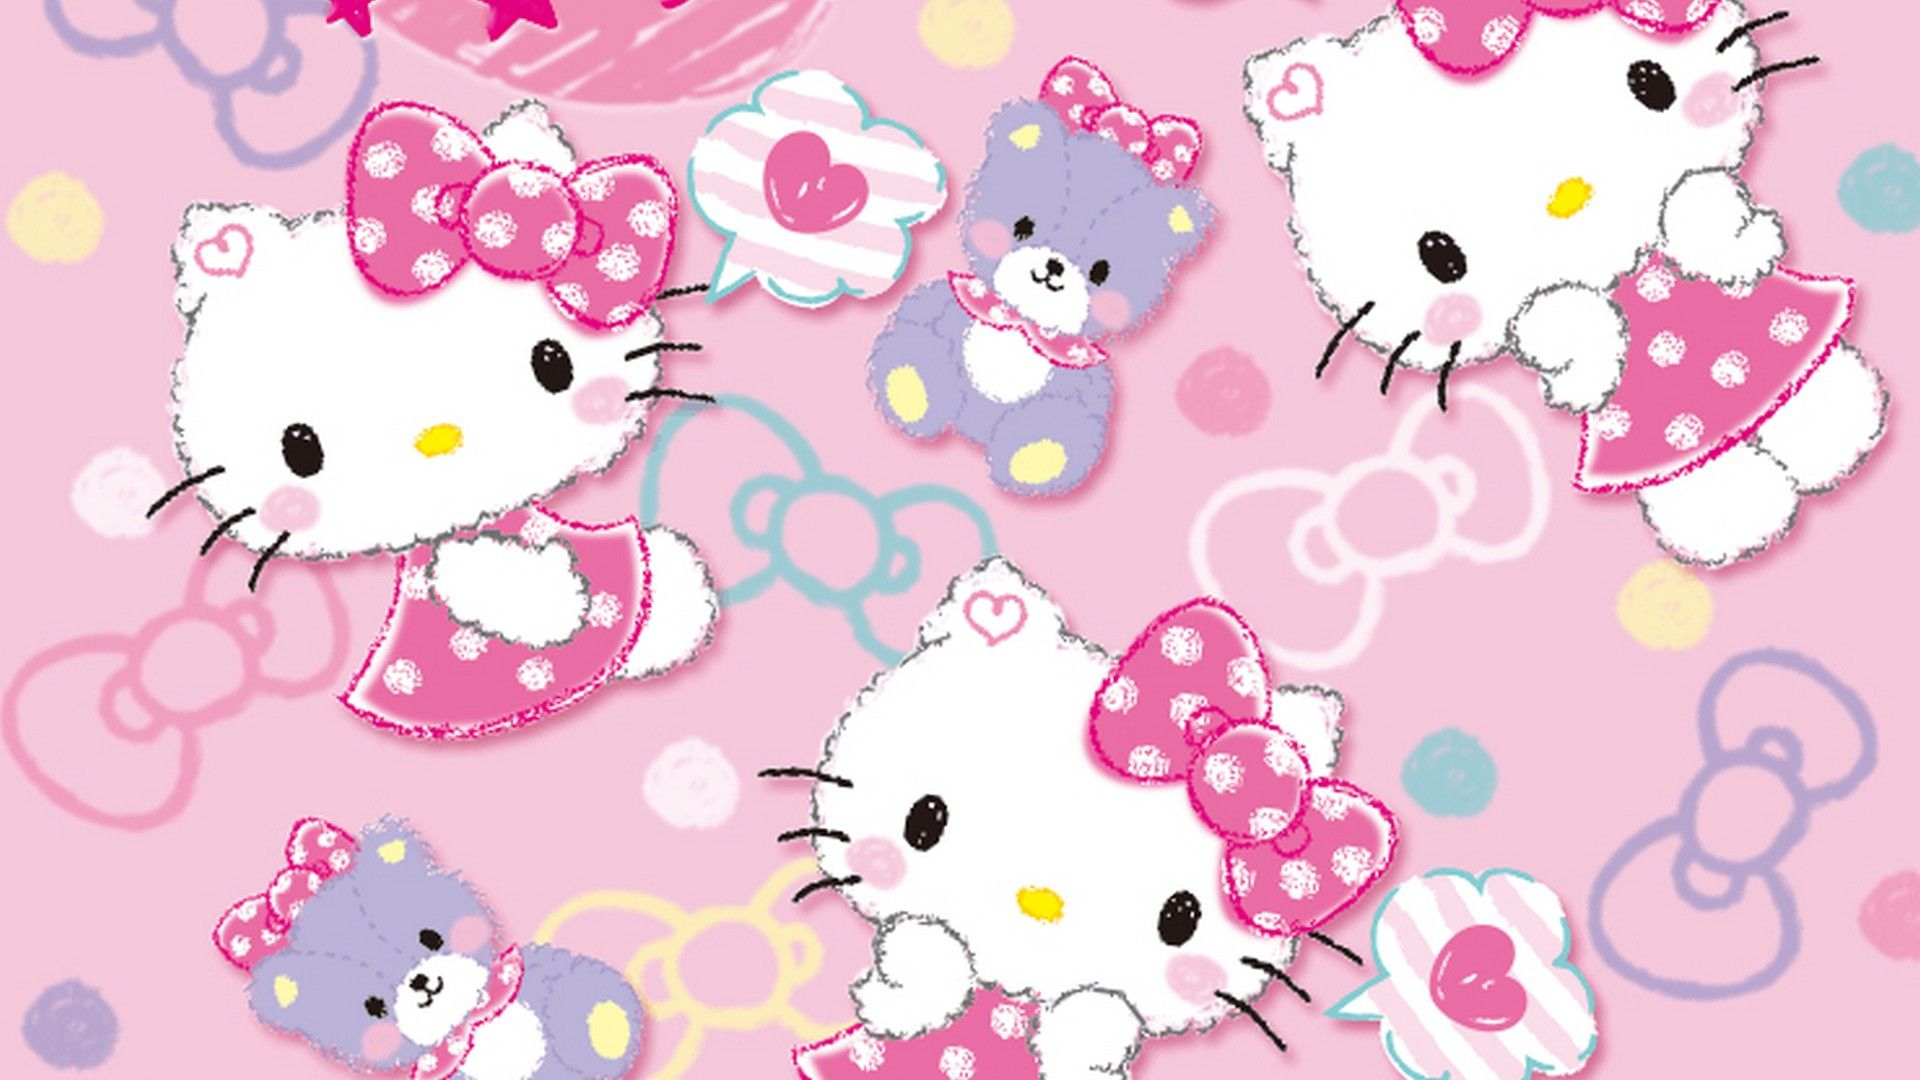 Hello Kitty Characters Background Wallpaper Hd 2020 Live Wallpaper Hd Hello Kitty Backgrounds Hello Kitty Pictures Hello Kitty Images